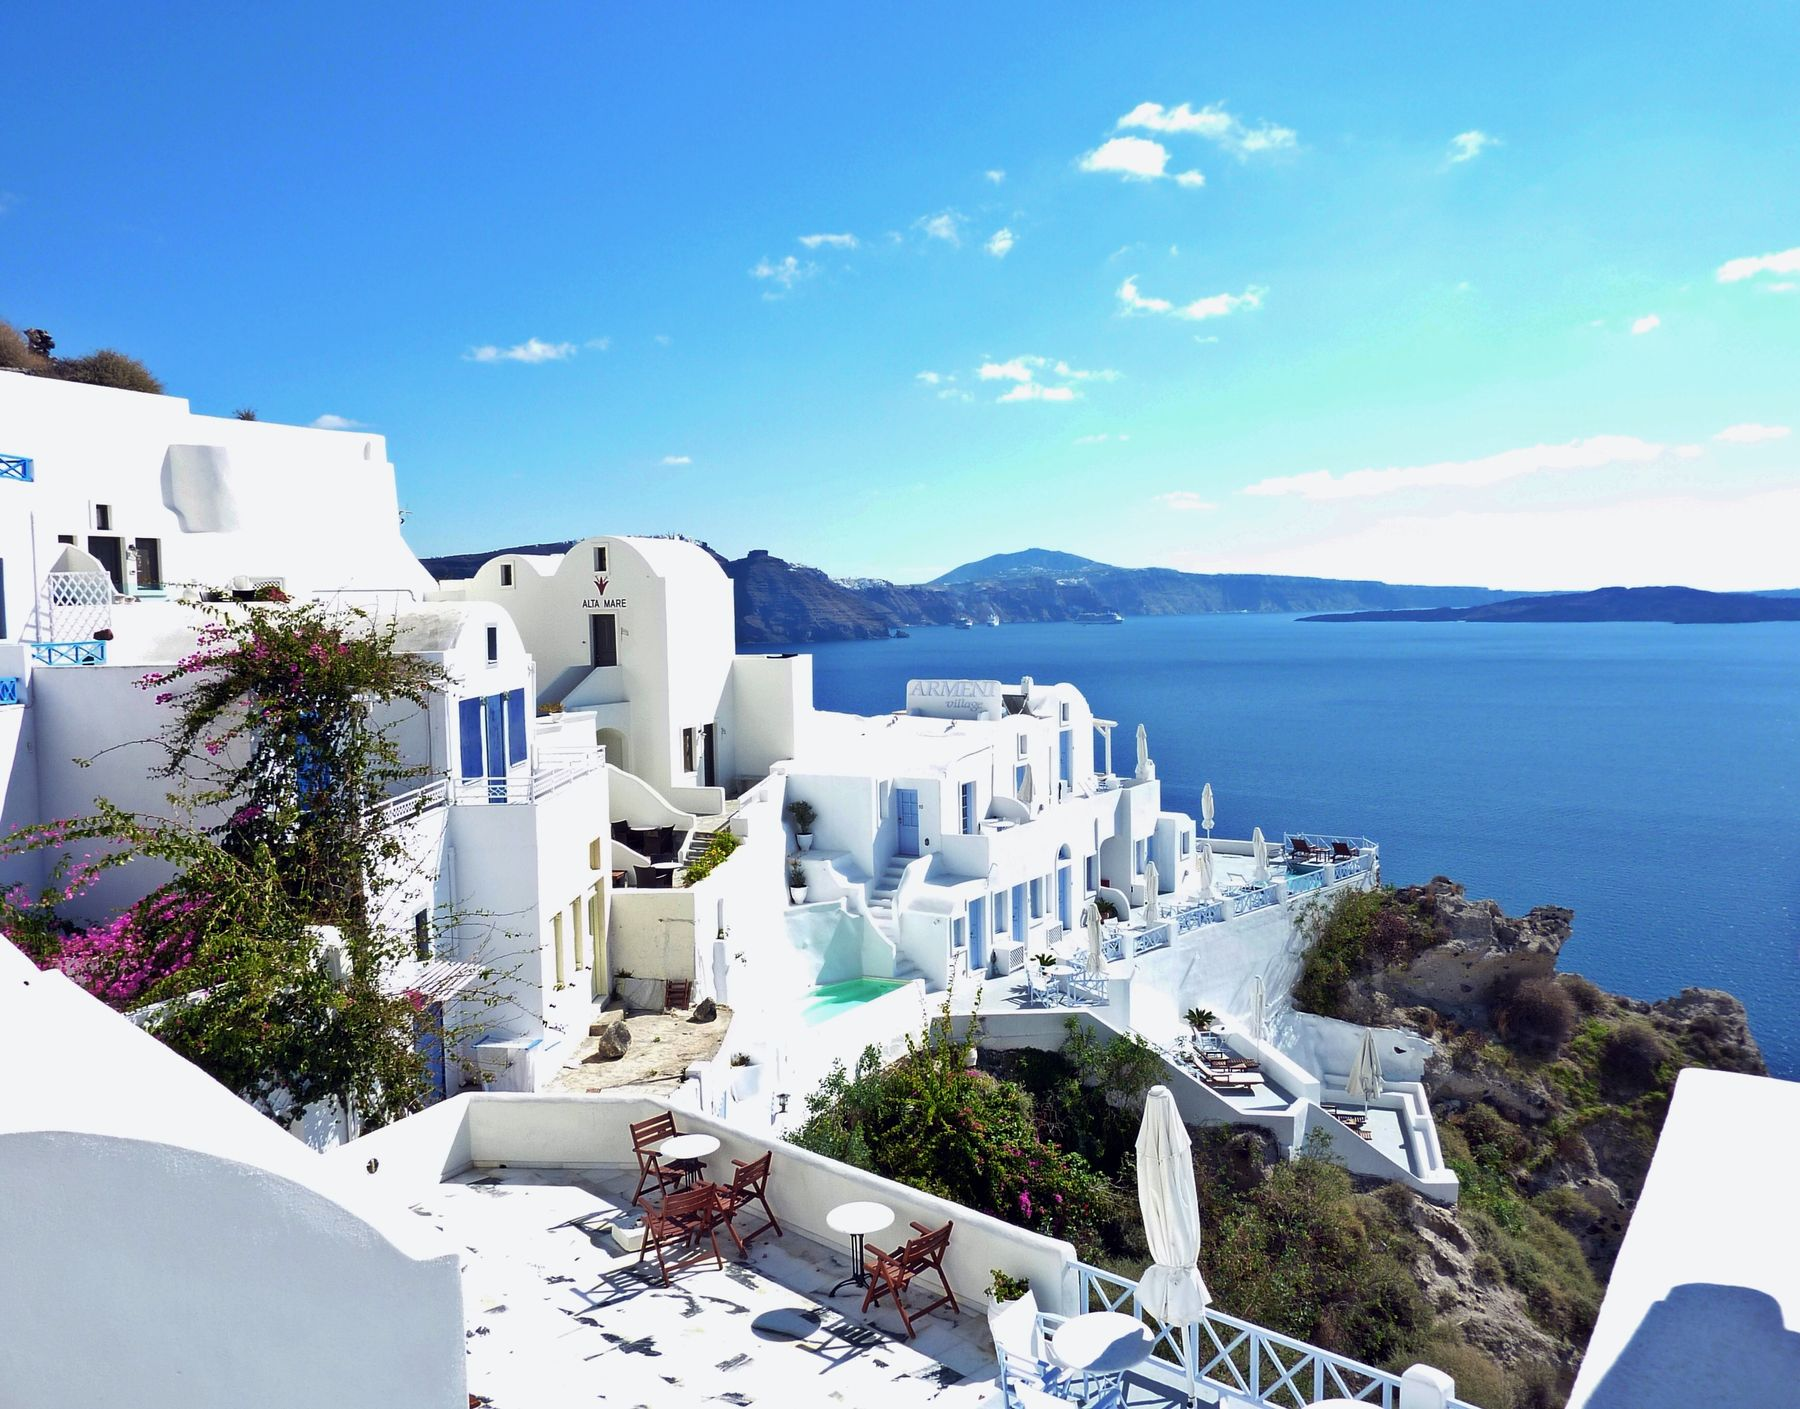 Santorini is a great option for its warm September weather